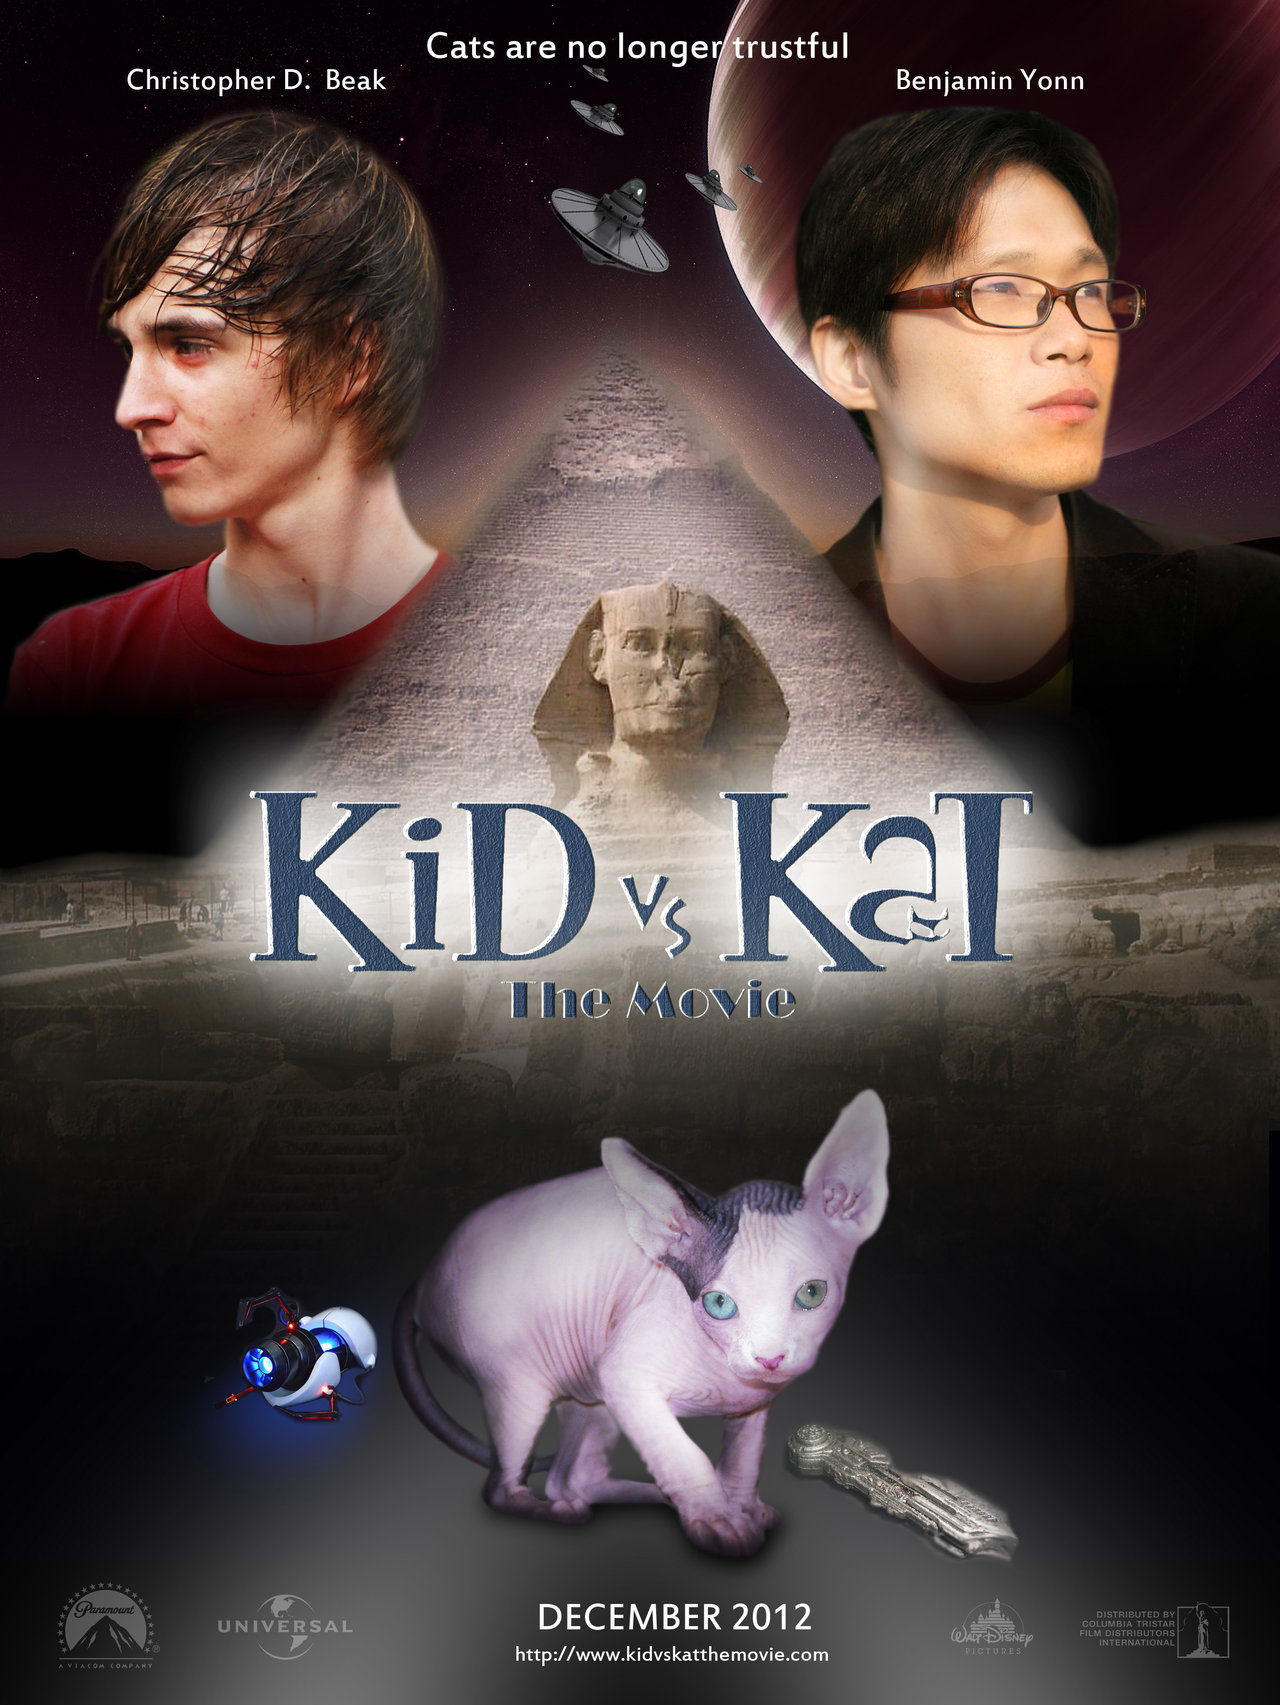 Kid vs Kat movie